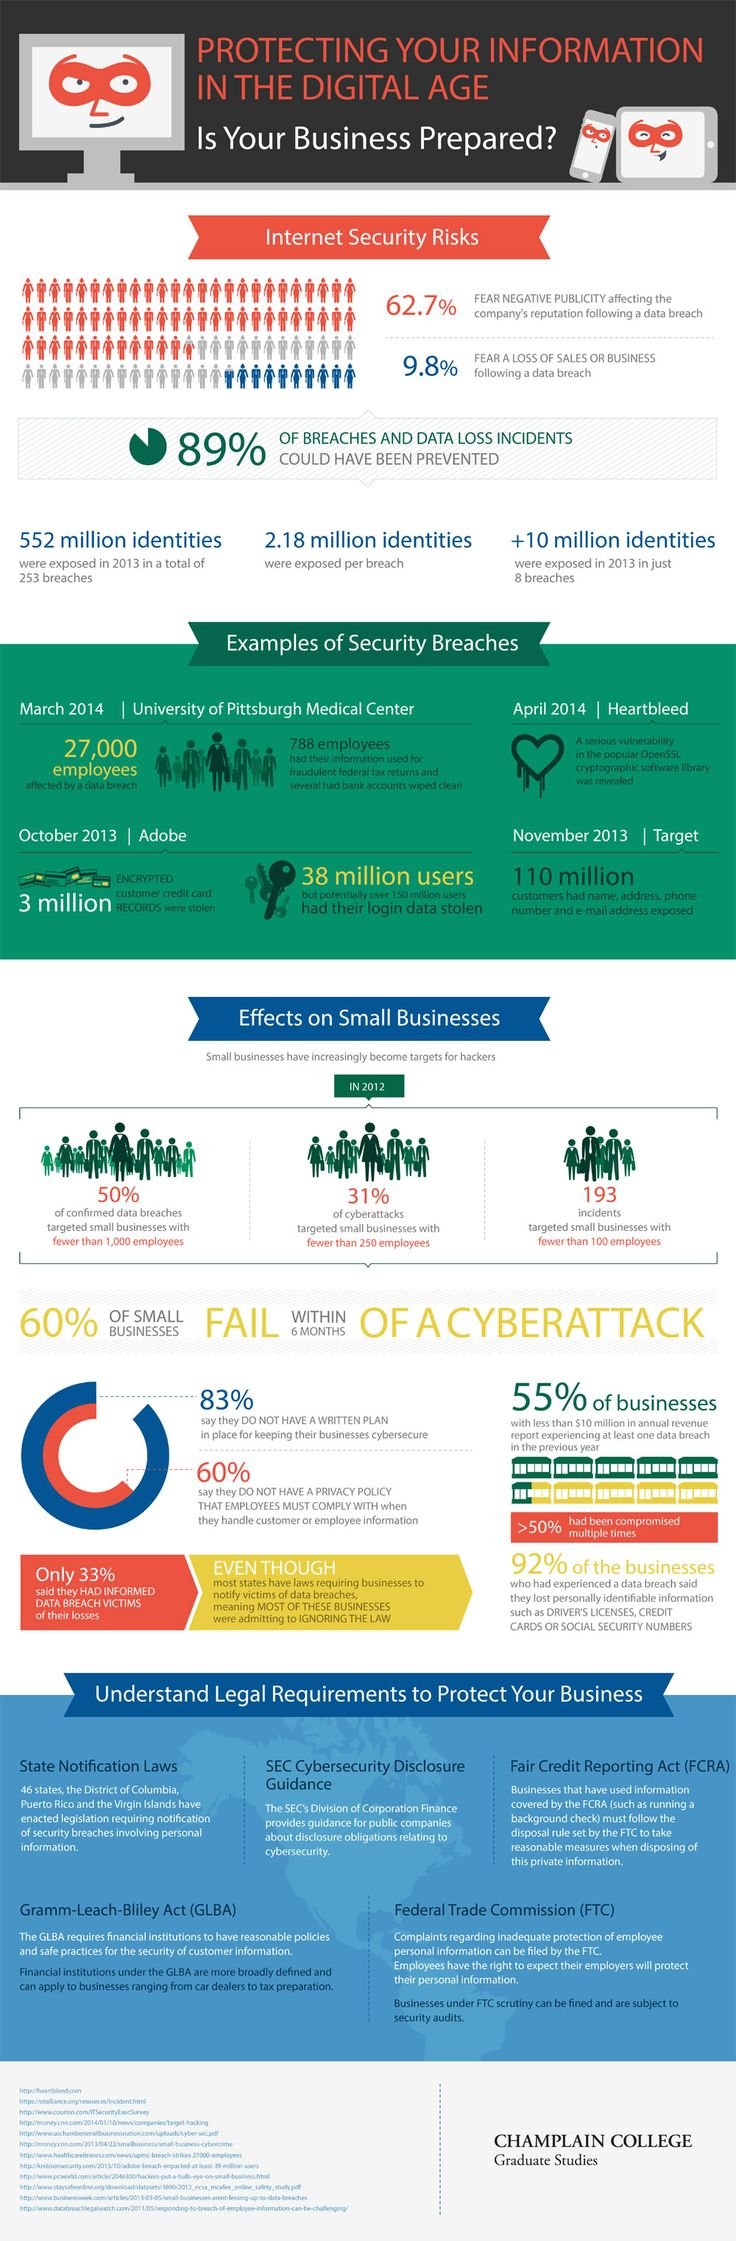 This infographic dives into the subject of internet privacy in today's digital age. As Internet usage continues to grow all across the world, security risks have become a reality for businesses. Make sure you have a plan to keep your information secure.